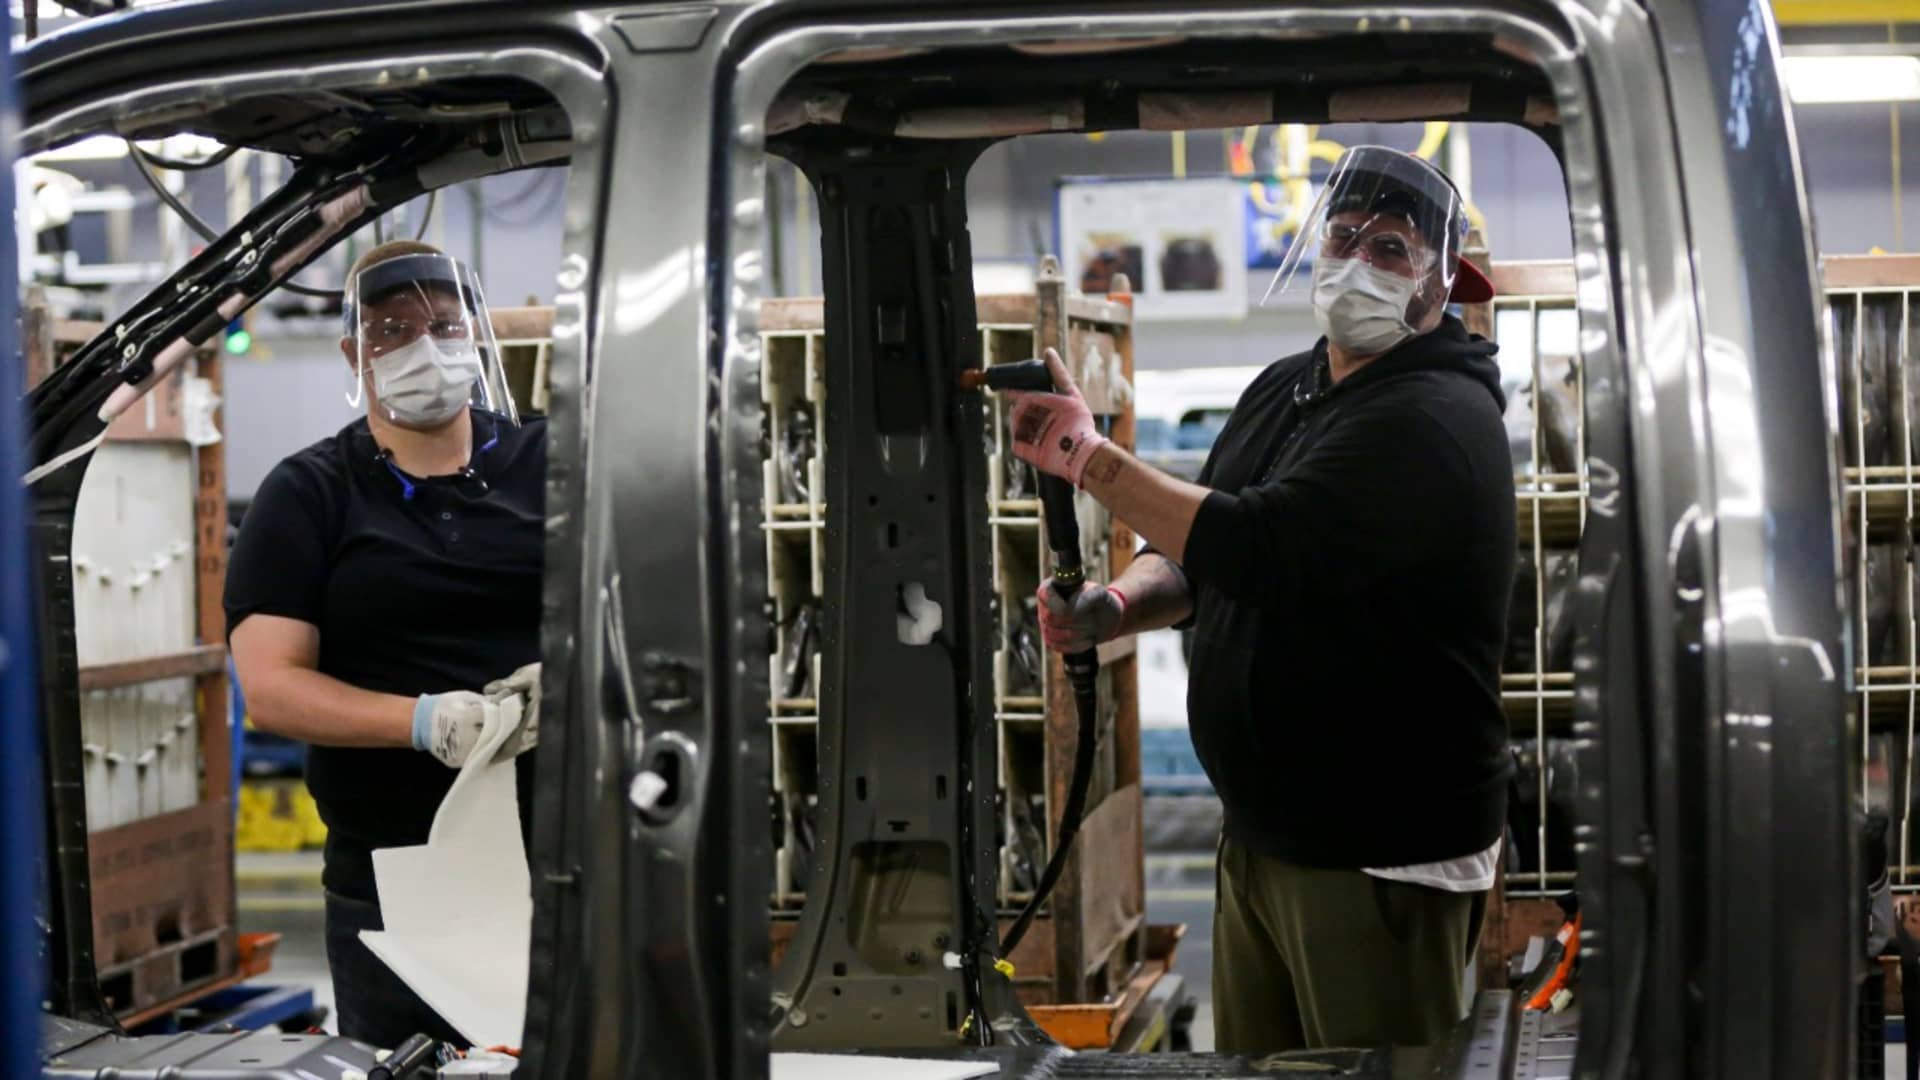 Ford started resuming vehicle production in the U.S. on May 18, 2020 with new coronavirus safety protocols such as health assessments, personal protective equipment and facility modifications to increase social distancing.